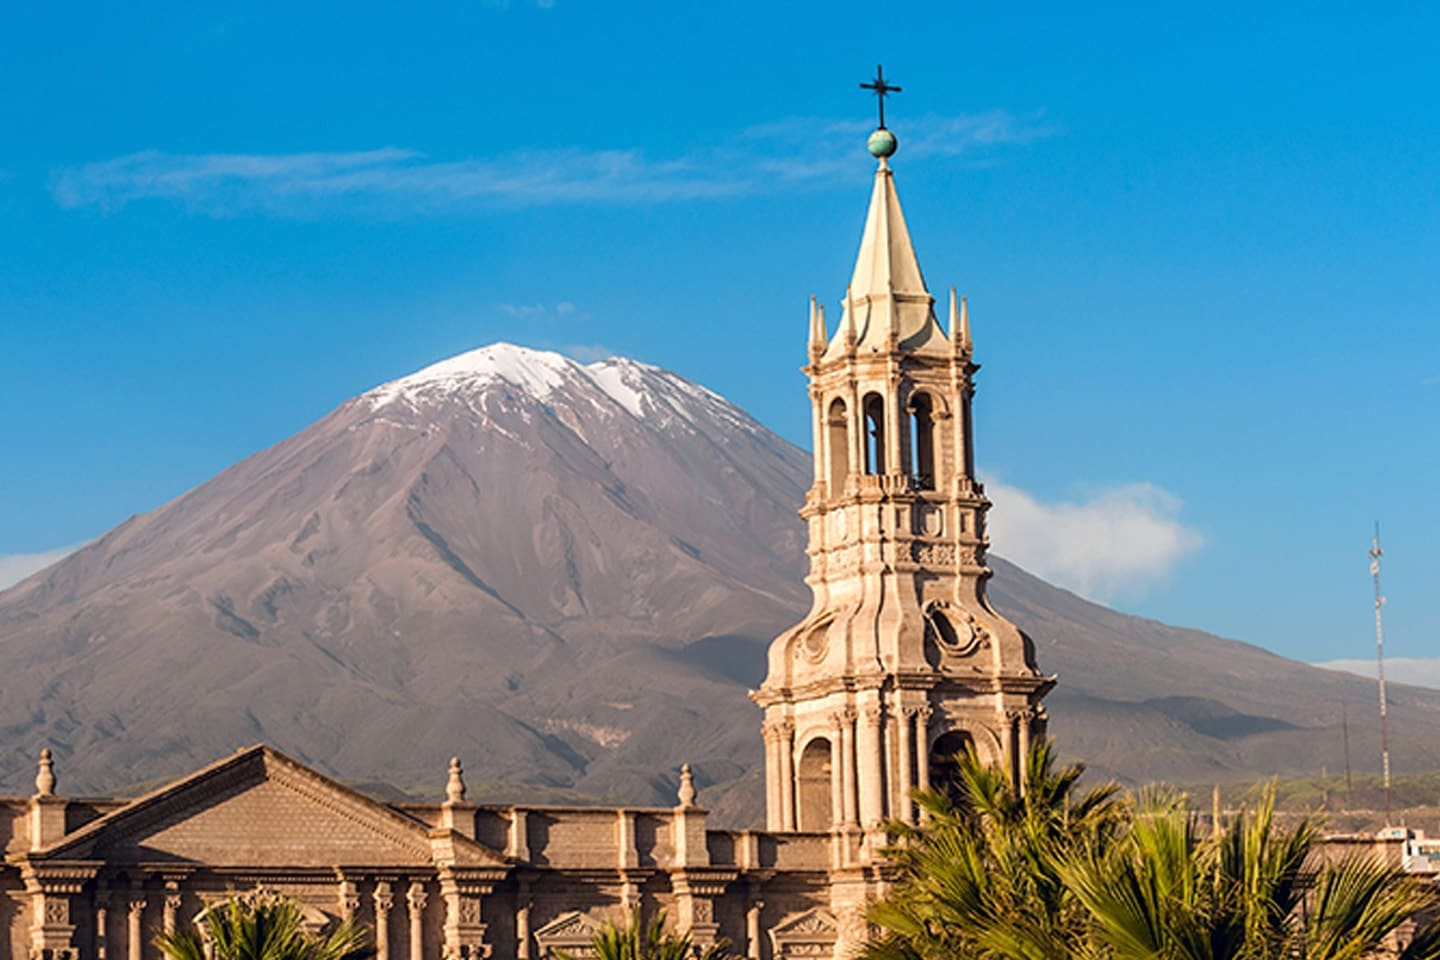 city, World Cultural heritage, historical, achitectures, Arequipa, 4M Express Bus Peru